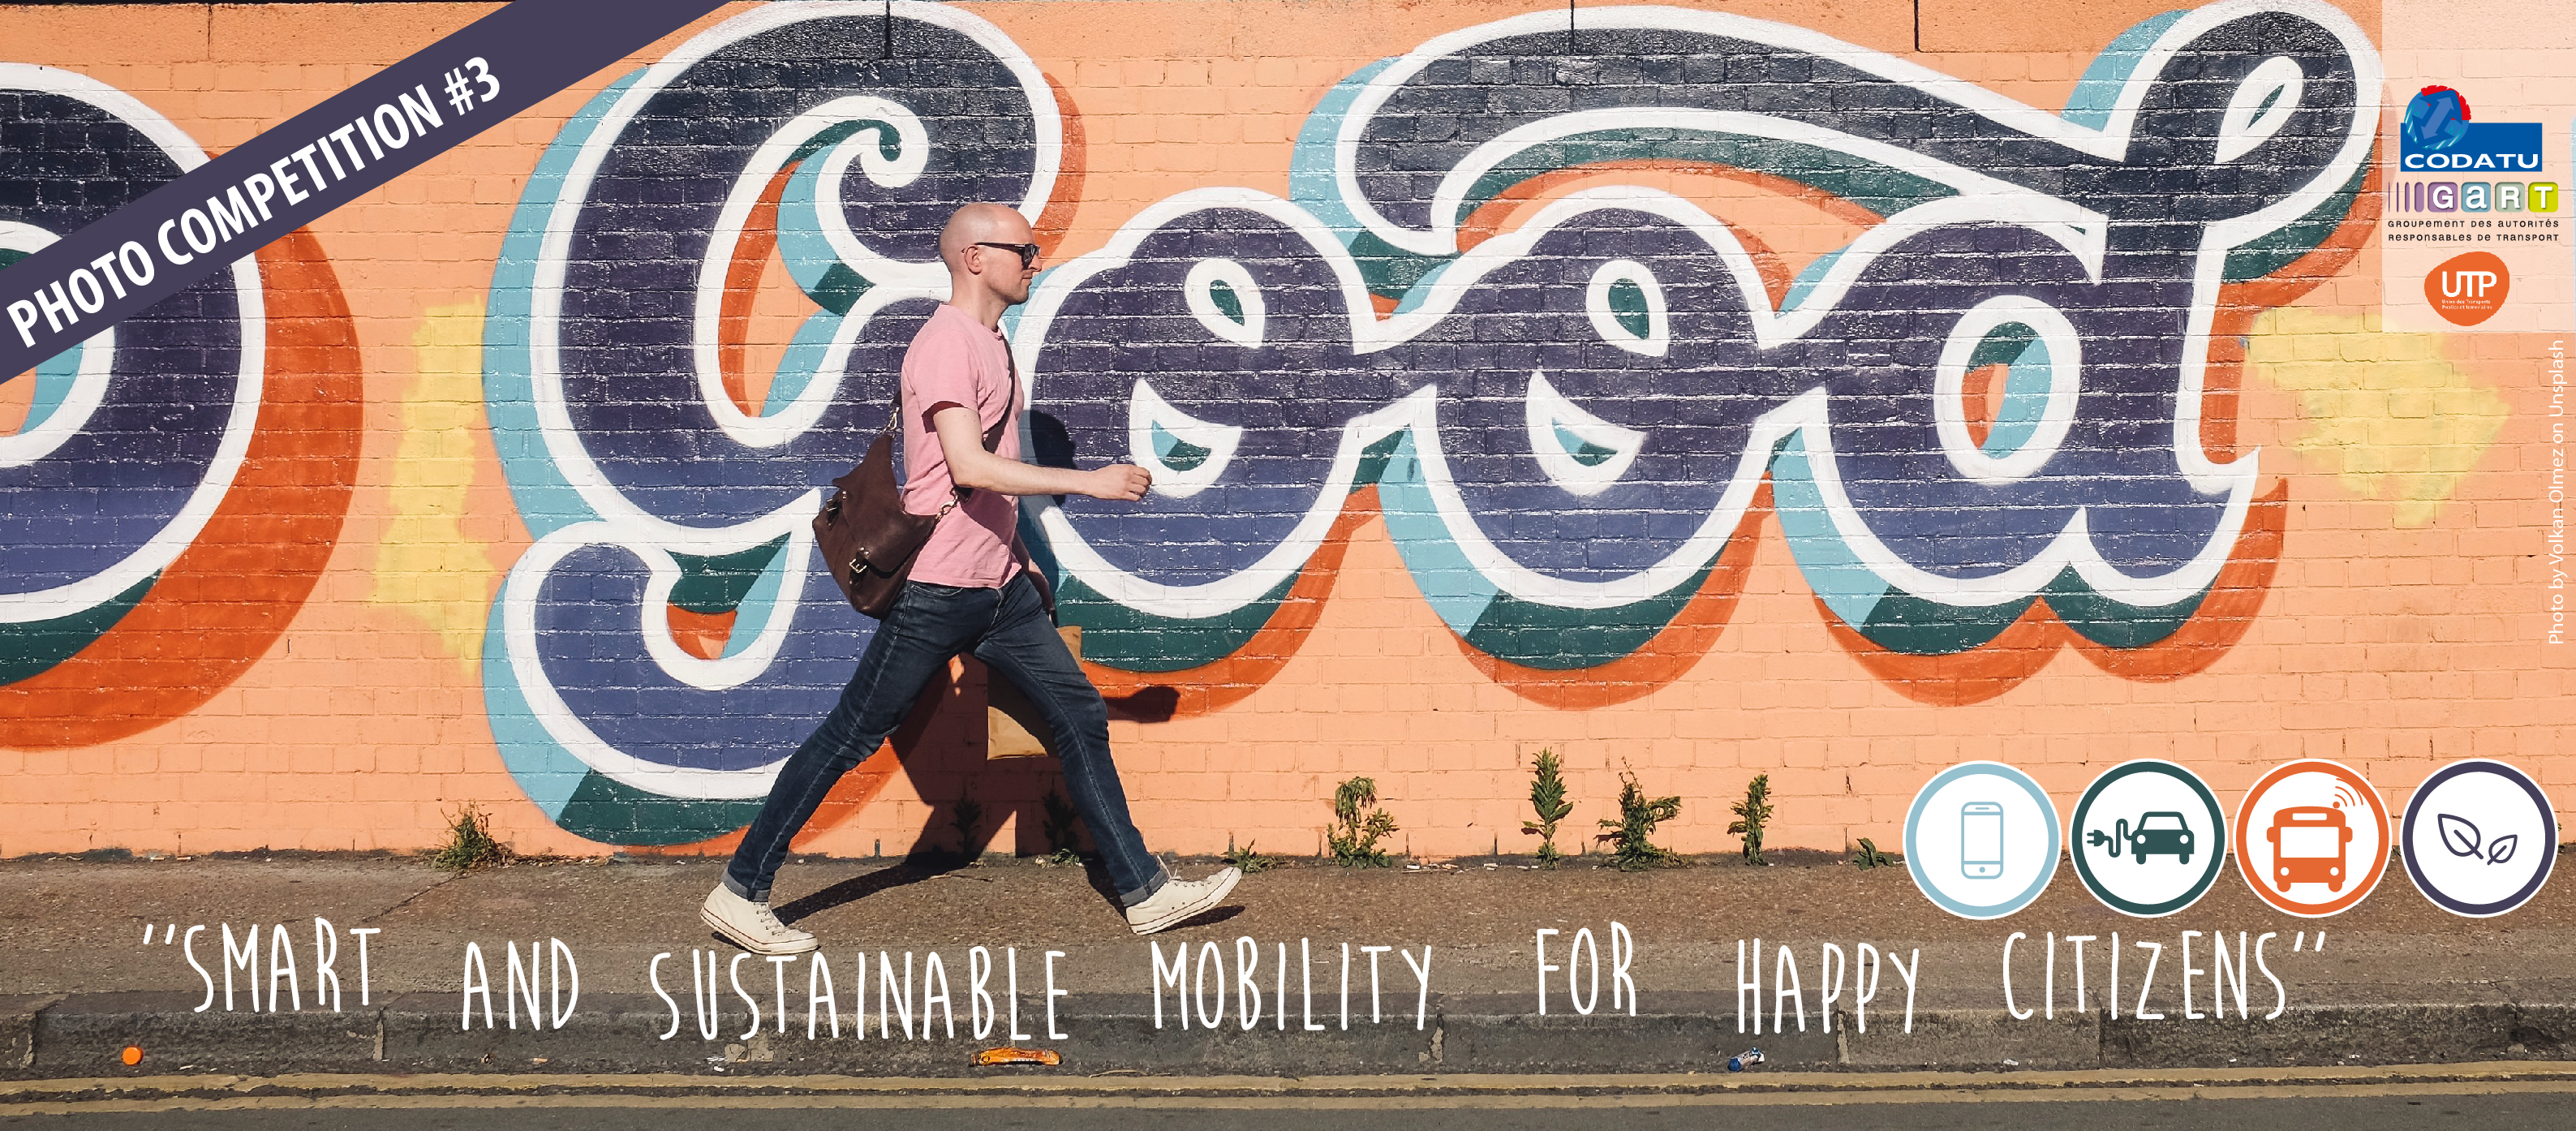 3rd CODATU Photo Competition: « Smart & Sustainable Mobility for Happy Citizens »